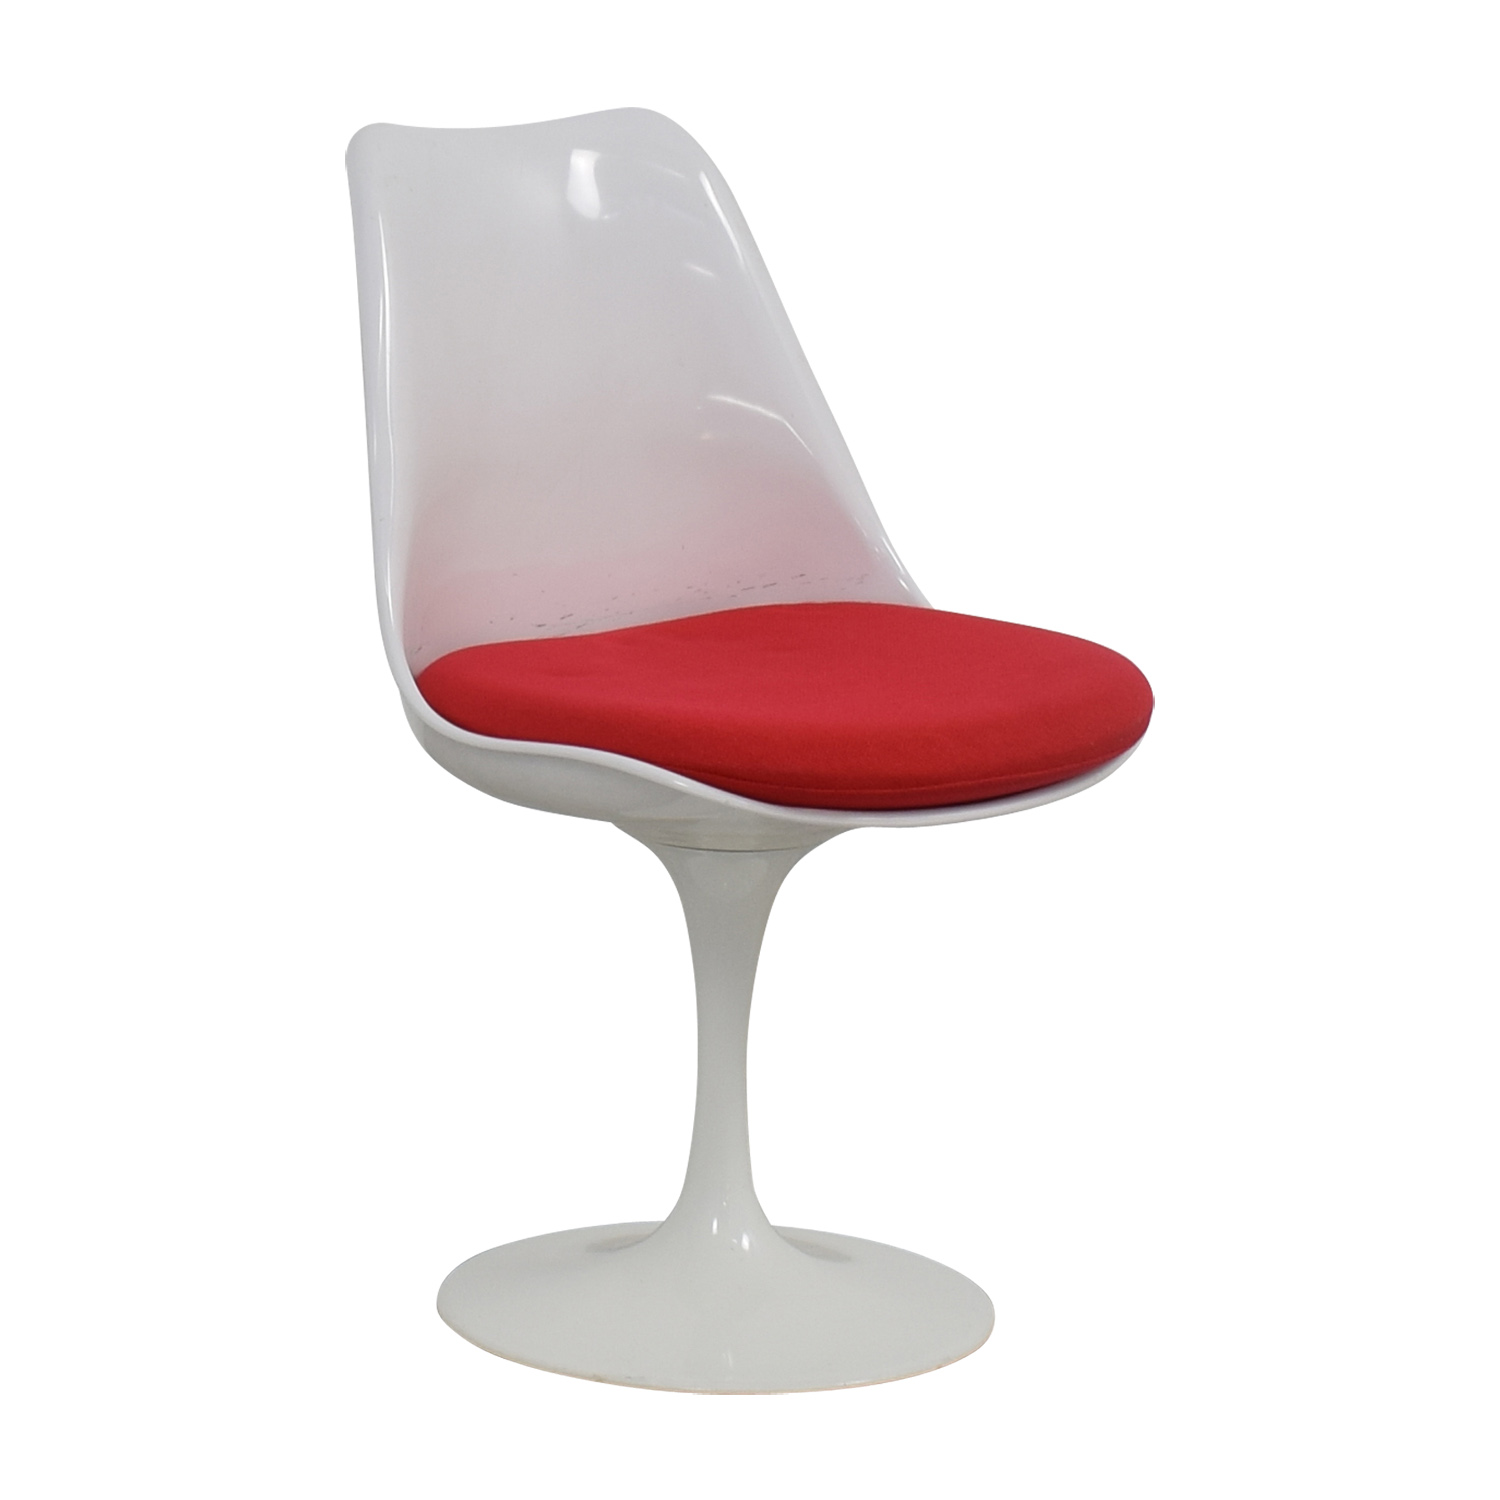 Prime 86 Off Red And White Desk Chair Chairs Alphanode Cool Chair Designs And Ideas Alphanodeonline